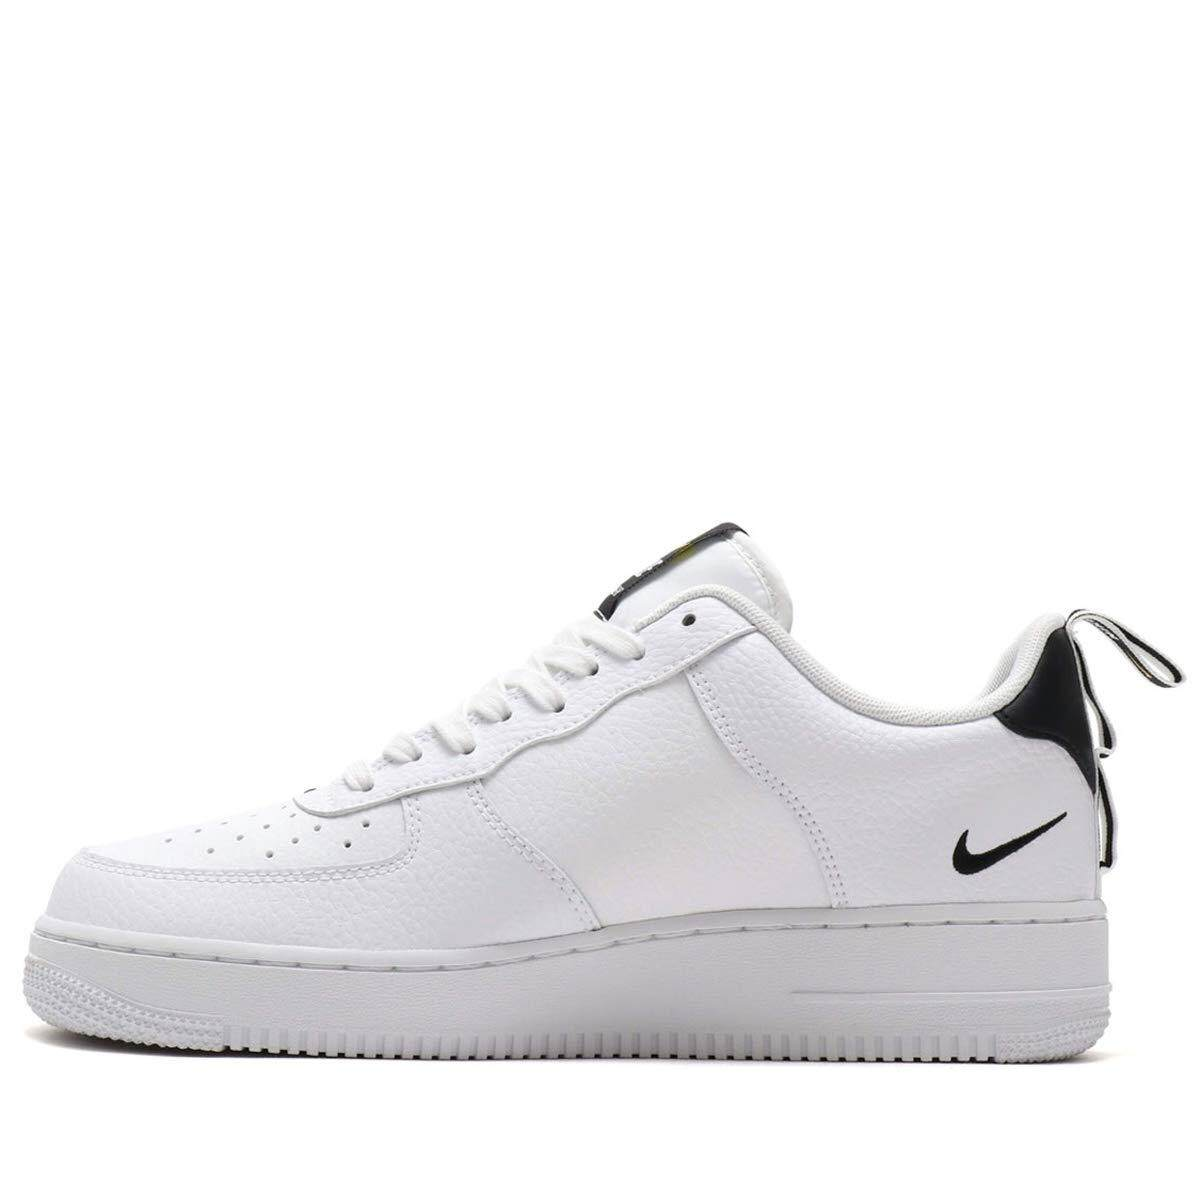 big sale 3ccd2 2b340 Specifications of Classic casual shoes white black low N i k e air force one   AIR FORCE 1 07 LV8 UTILITY  lace AJ7747-100 overseas direct mail DC0100